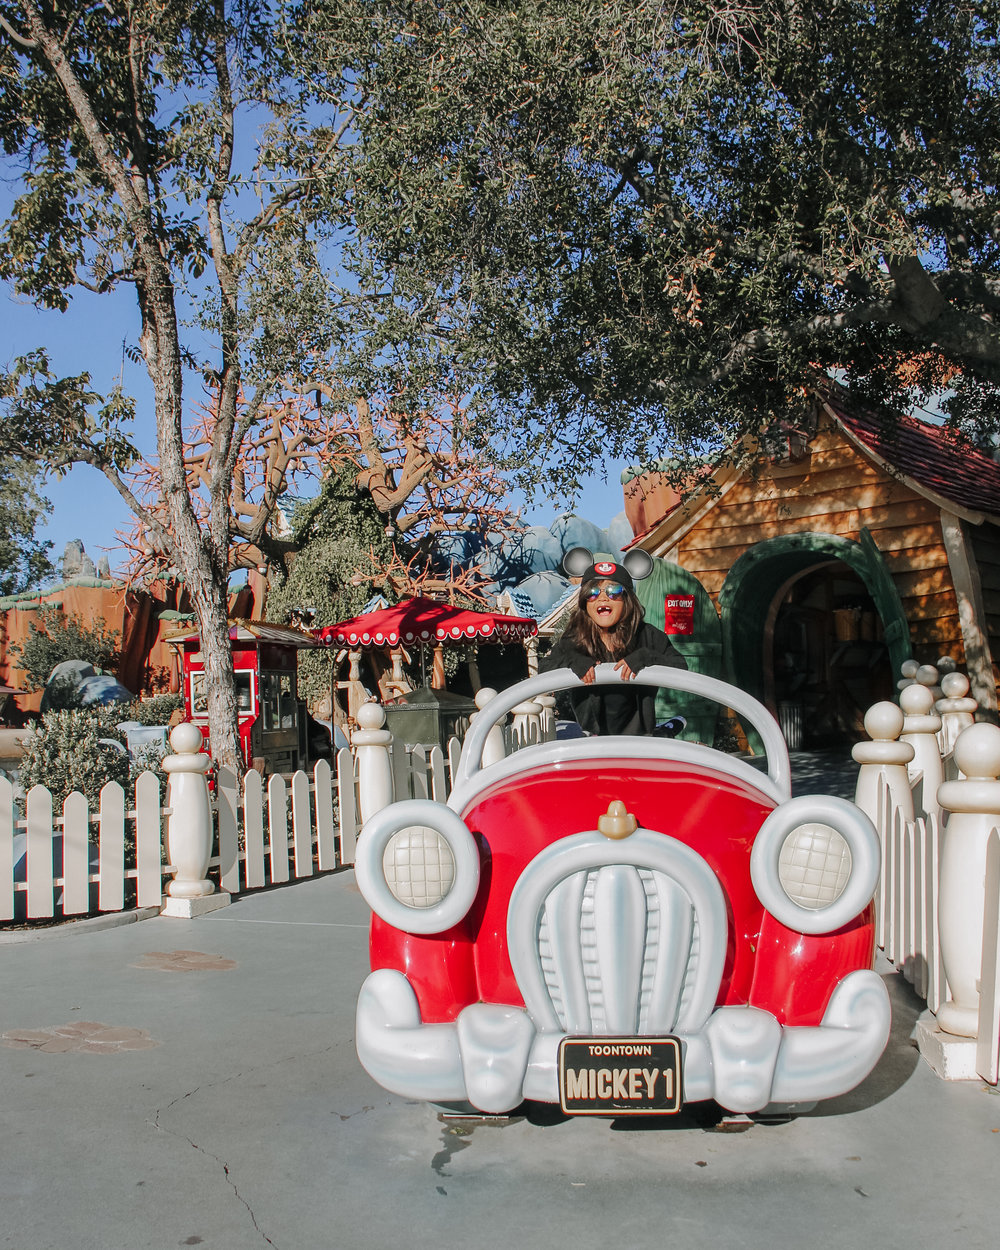 Hanging out in Toon Town!